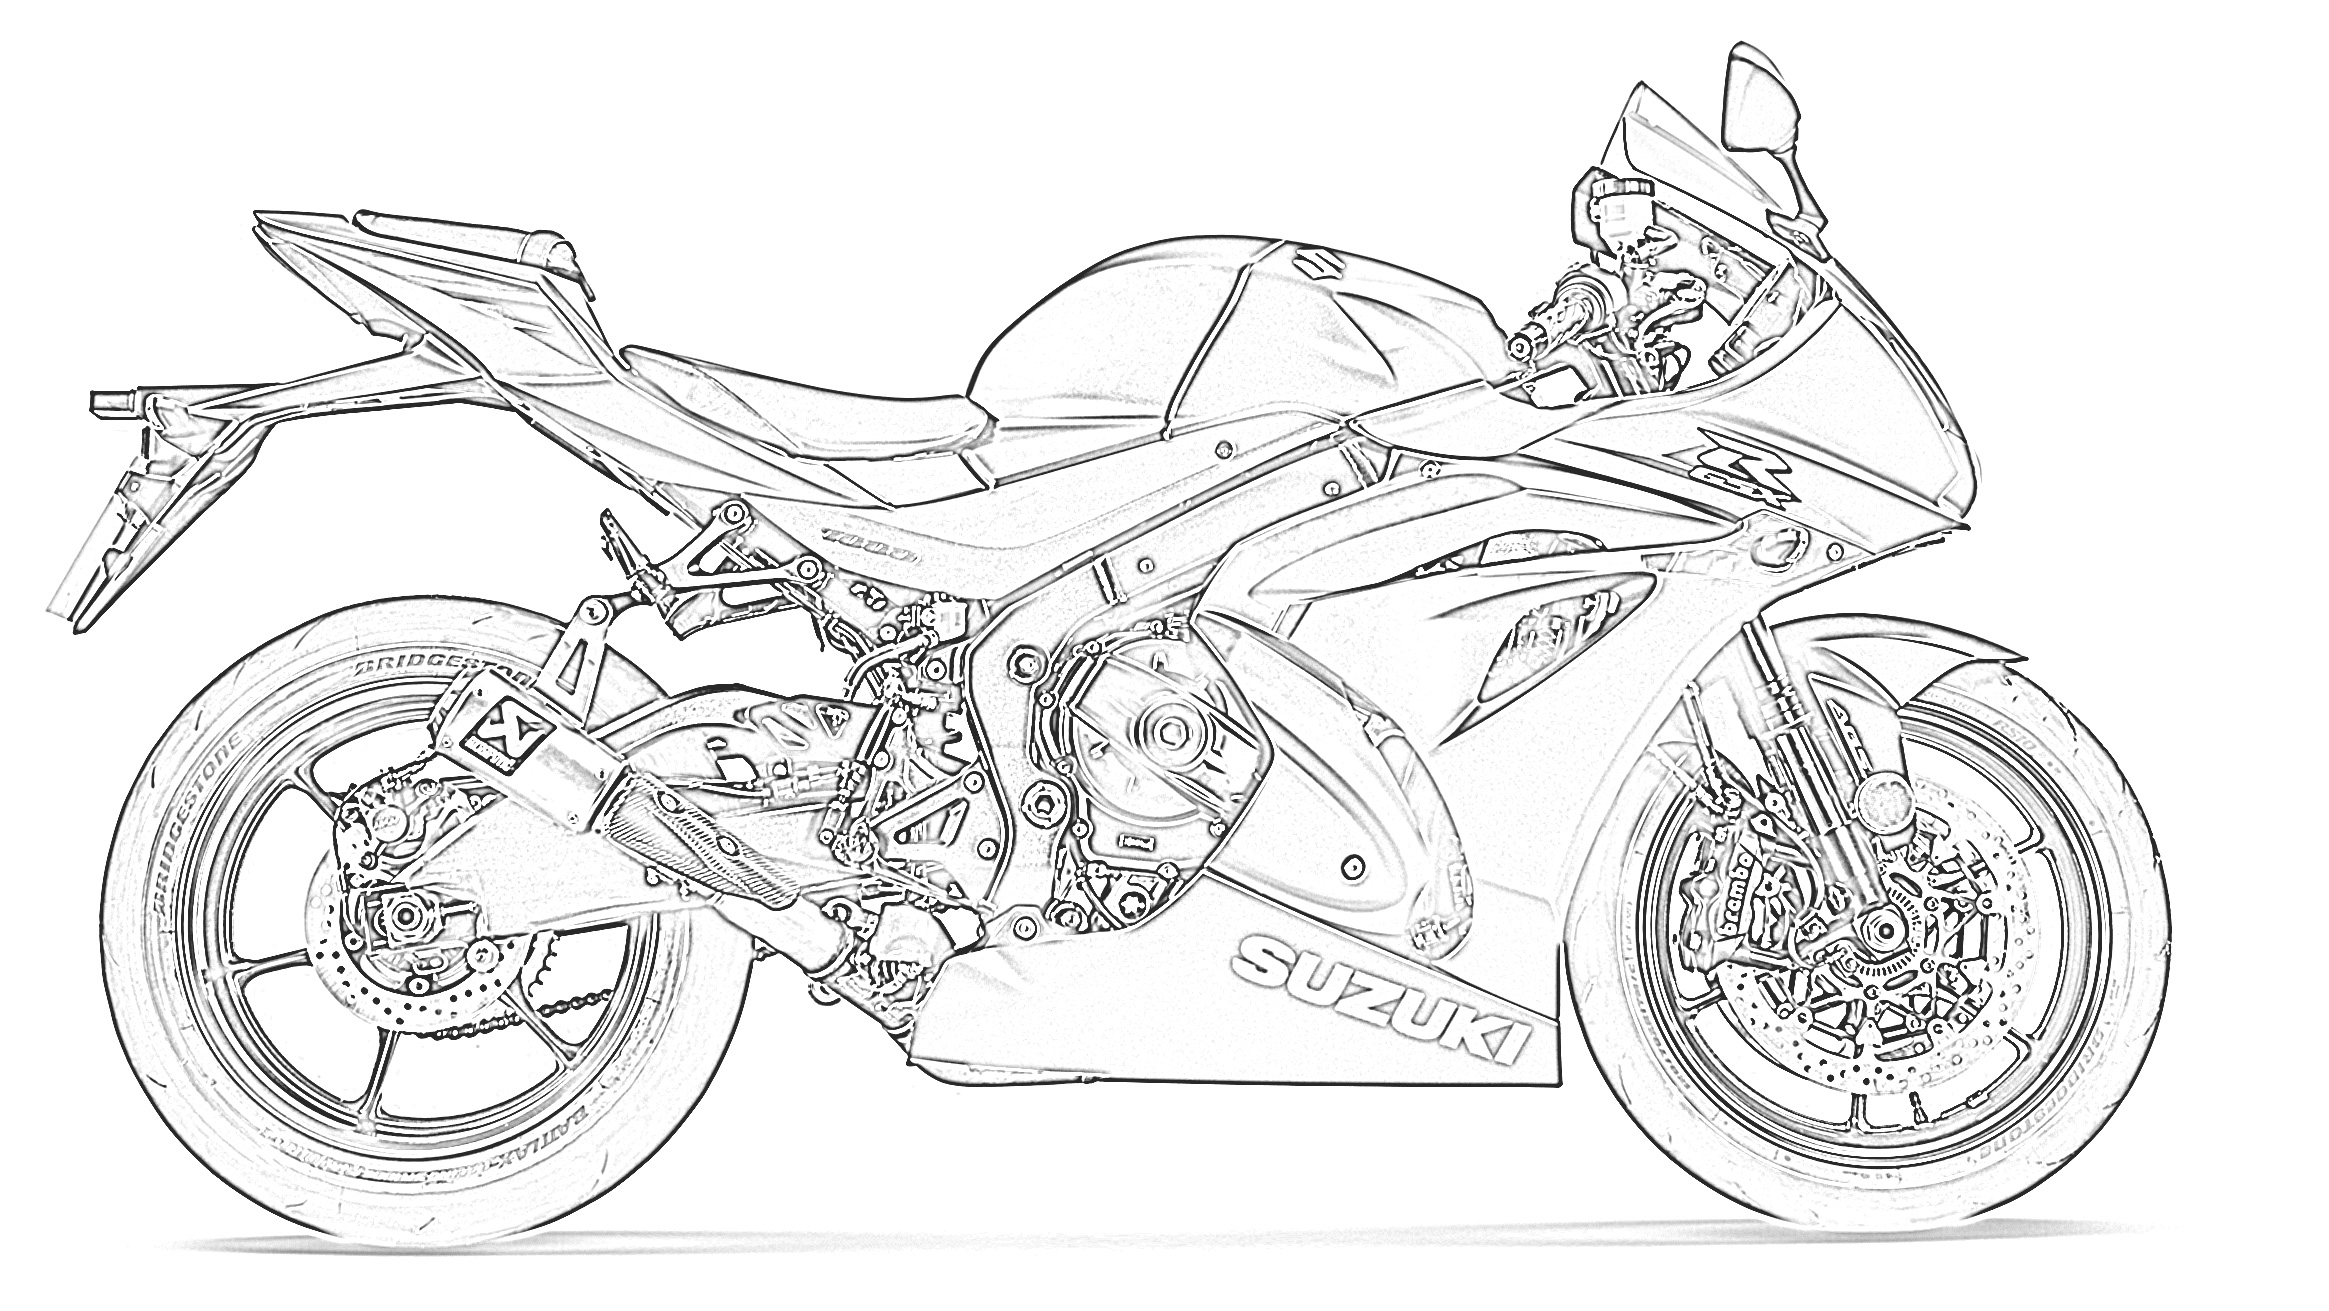 motorcycle color pages motorcycle coloring pages to download and print for free color motorcycle pages 1 1